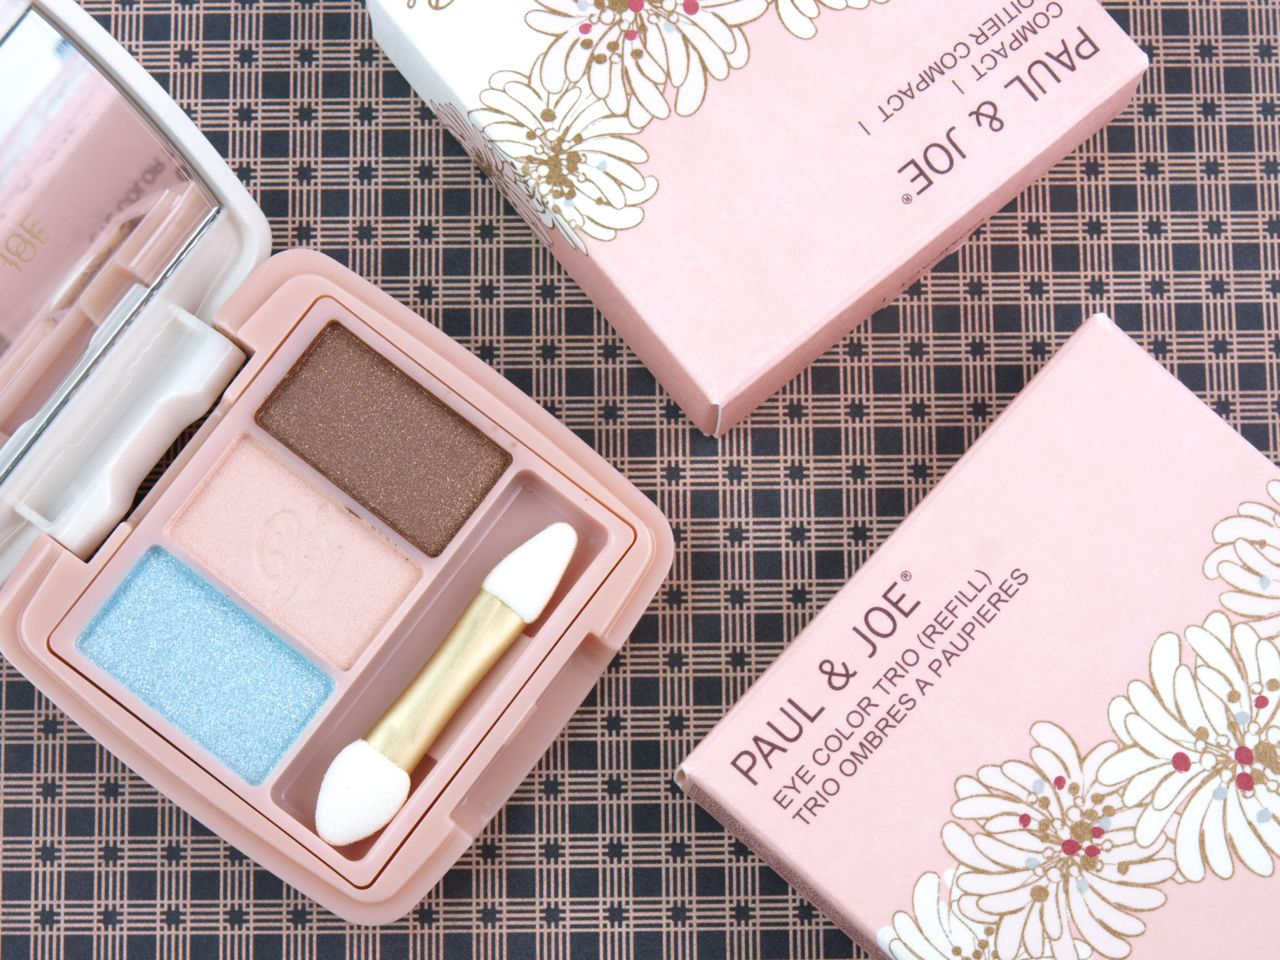 Paul & Joe Eye Color Trio 6 April in Paris & Compact I: Review and Swatches